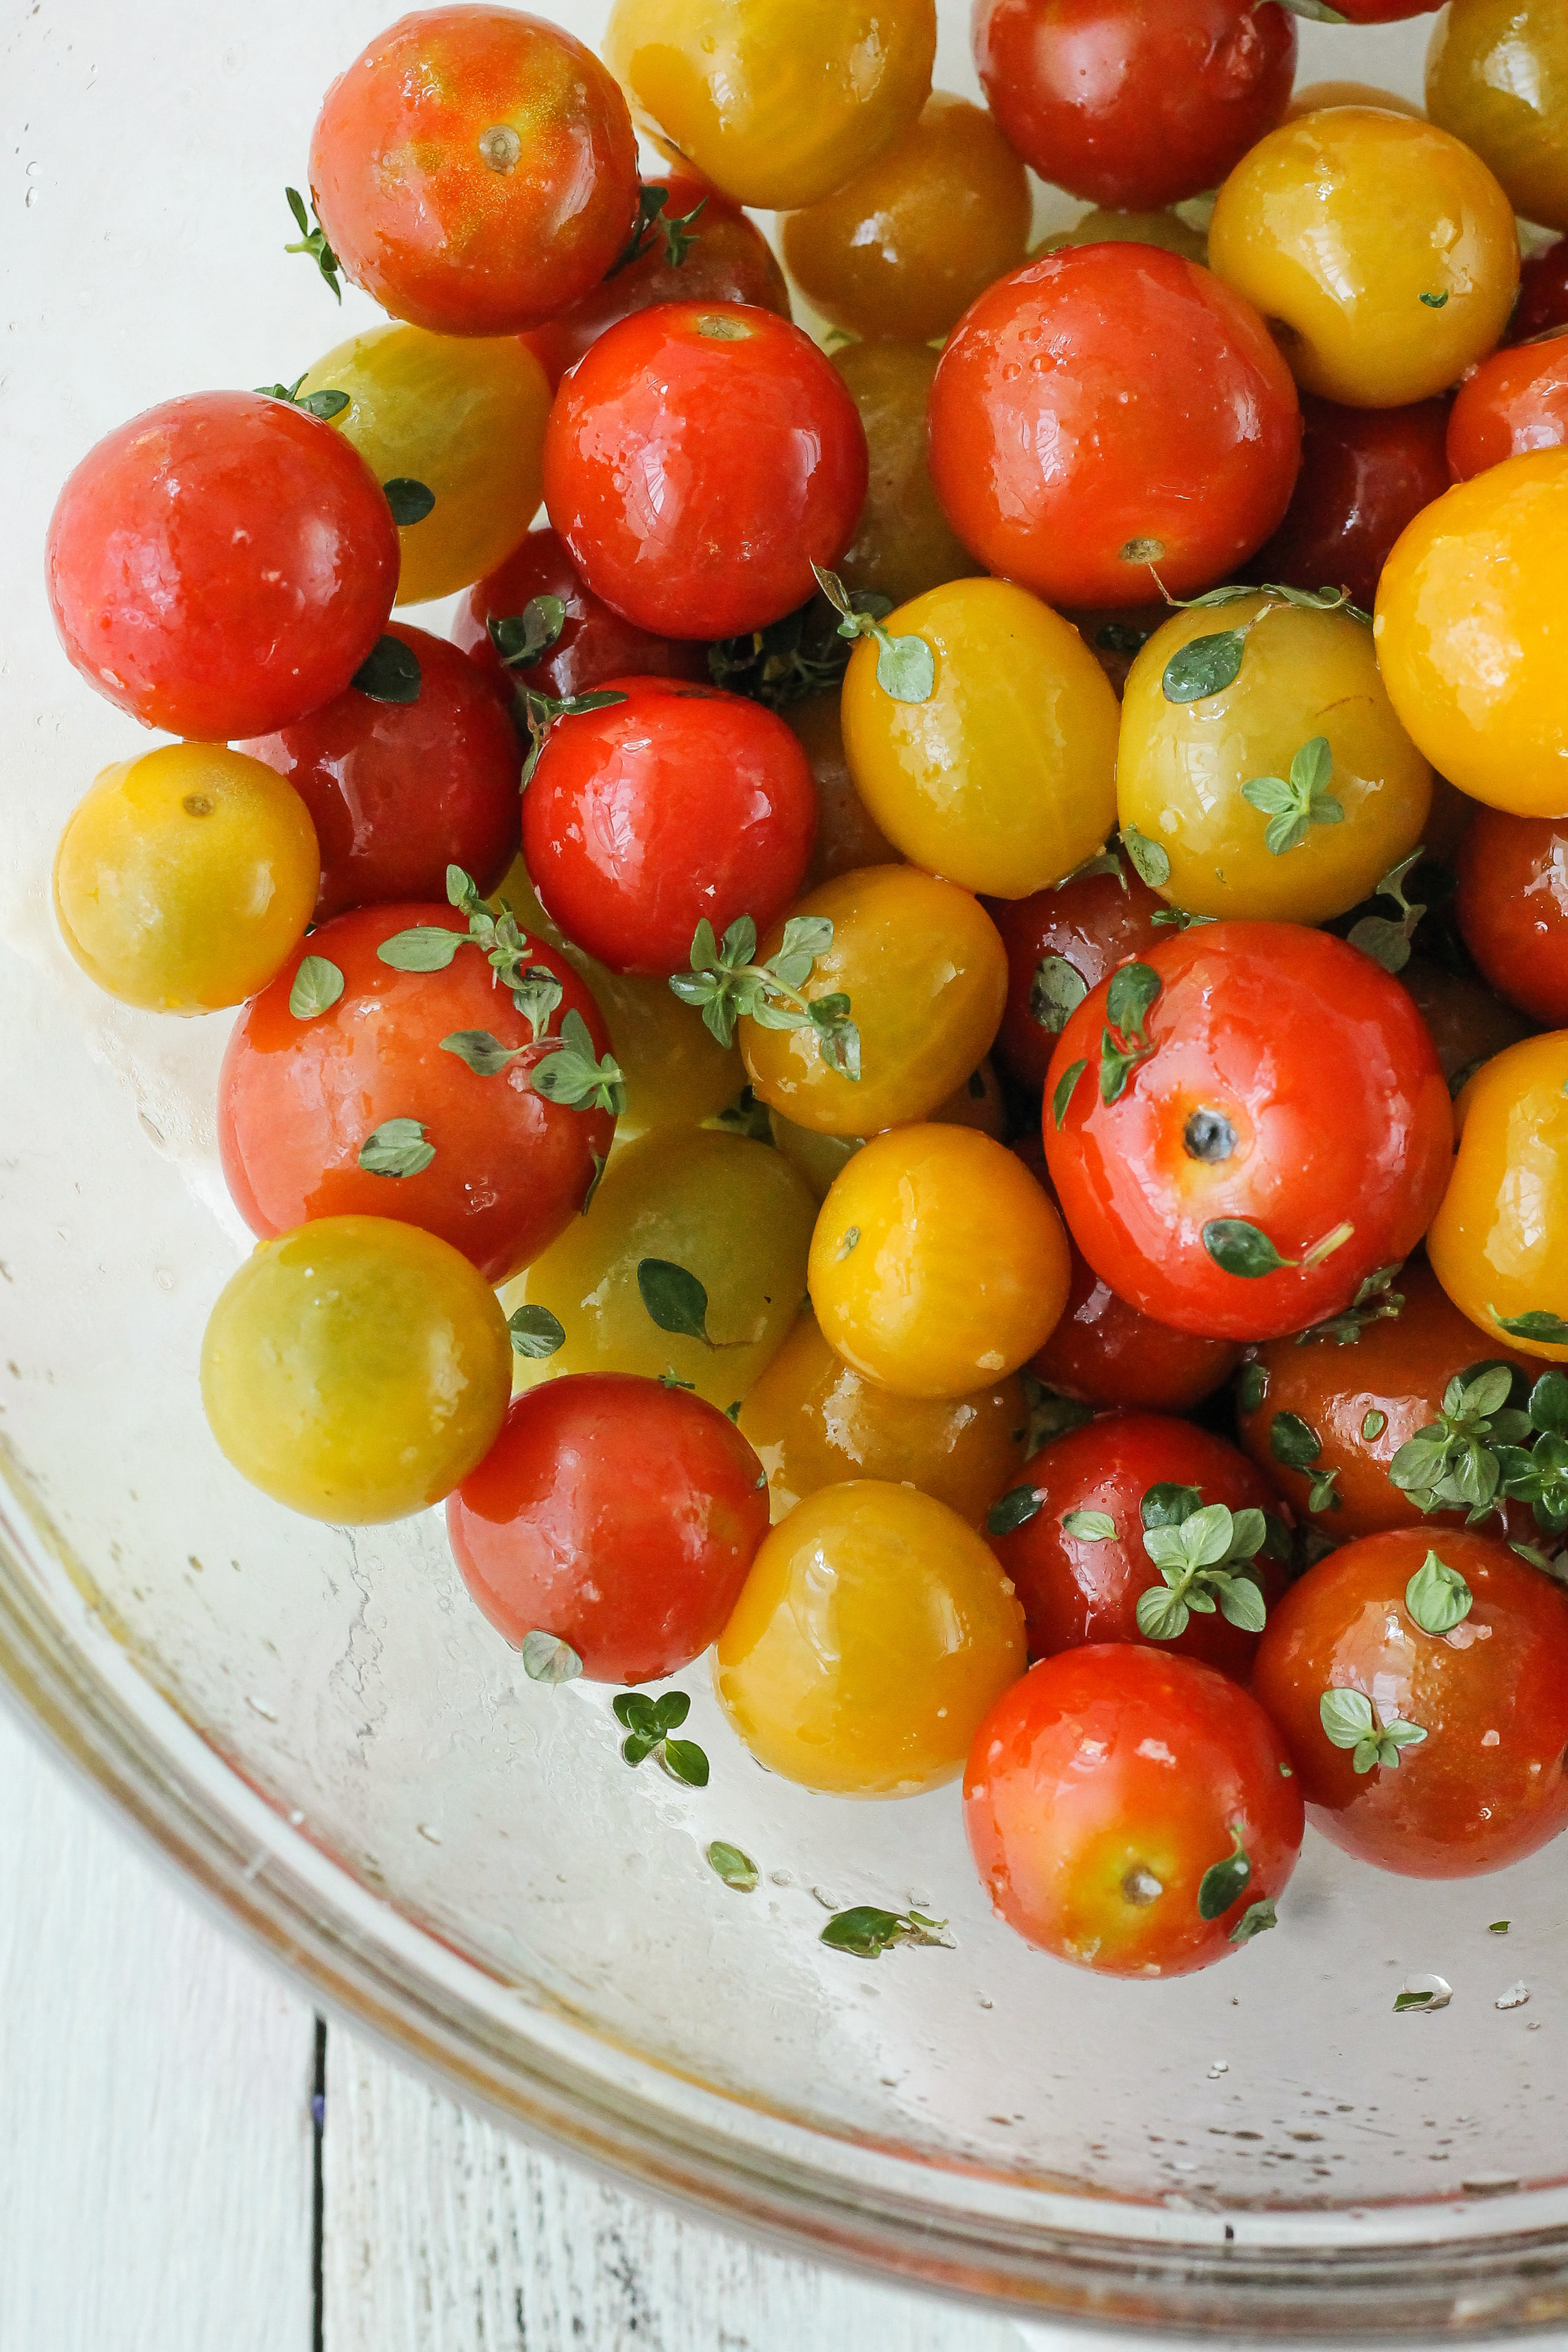 These 5-ingredient Lemon Thyme Roasted Tomatoes are one of the simplest and most delicious sides you'll make all summer!  Find the recipe on WWW.PEDANTICFOODIE.COM!